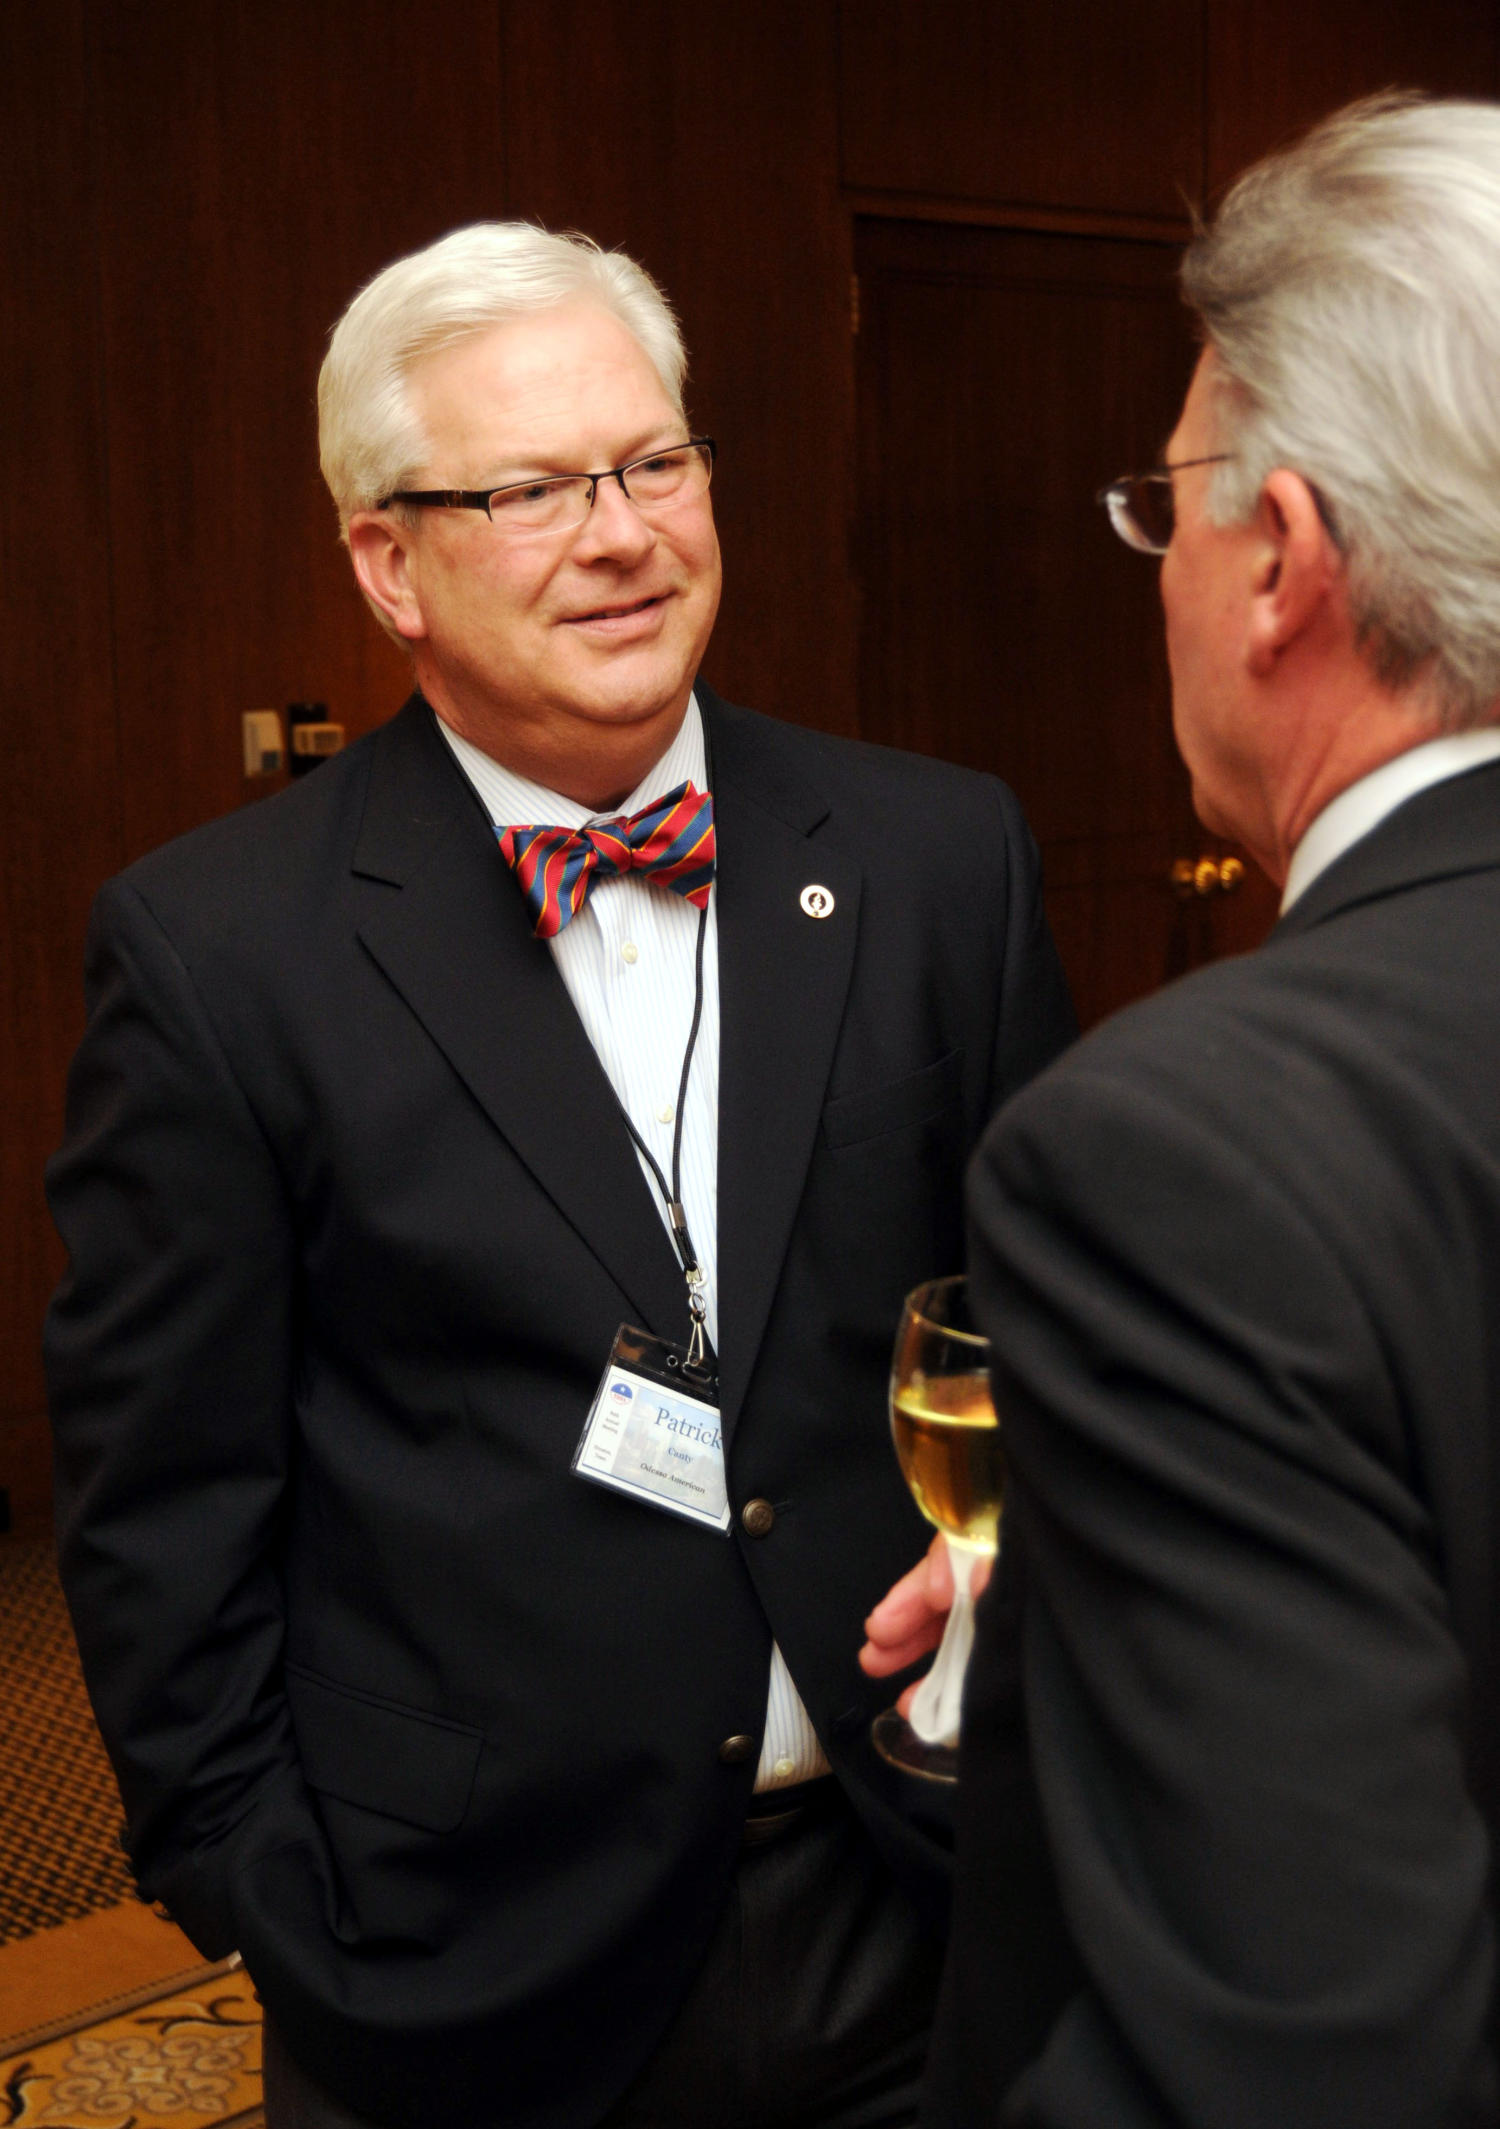 [Patrick Canty talking with conference attendee], Photograph of Patrick Canty talking with an unidentified man, as they are in a hall with other guests who are attending the 2010 Texas Daily Newspaper Association annual meeting held in Houston, Texas.,